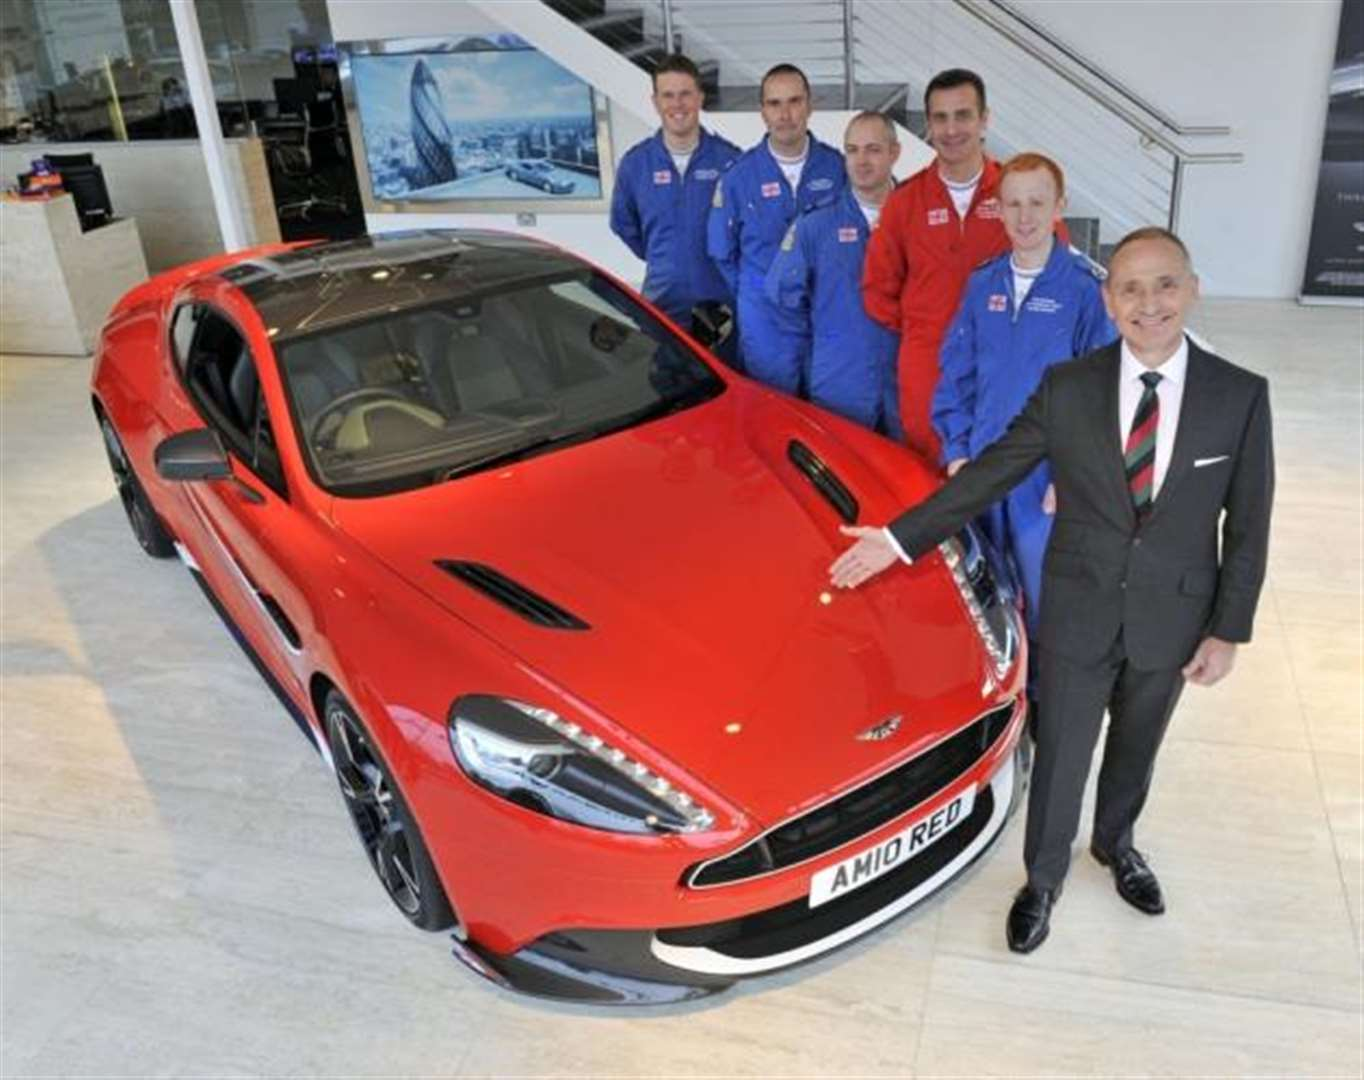 Cambridge Aston Martin produce spectacular £275,000 Red Arrow cars